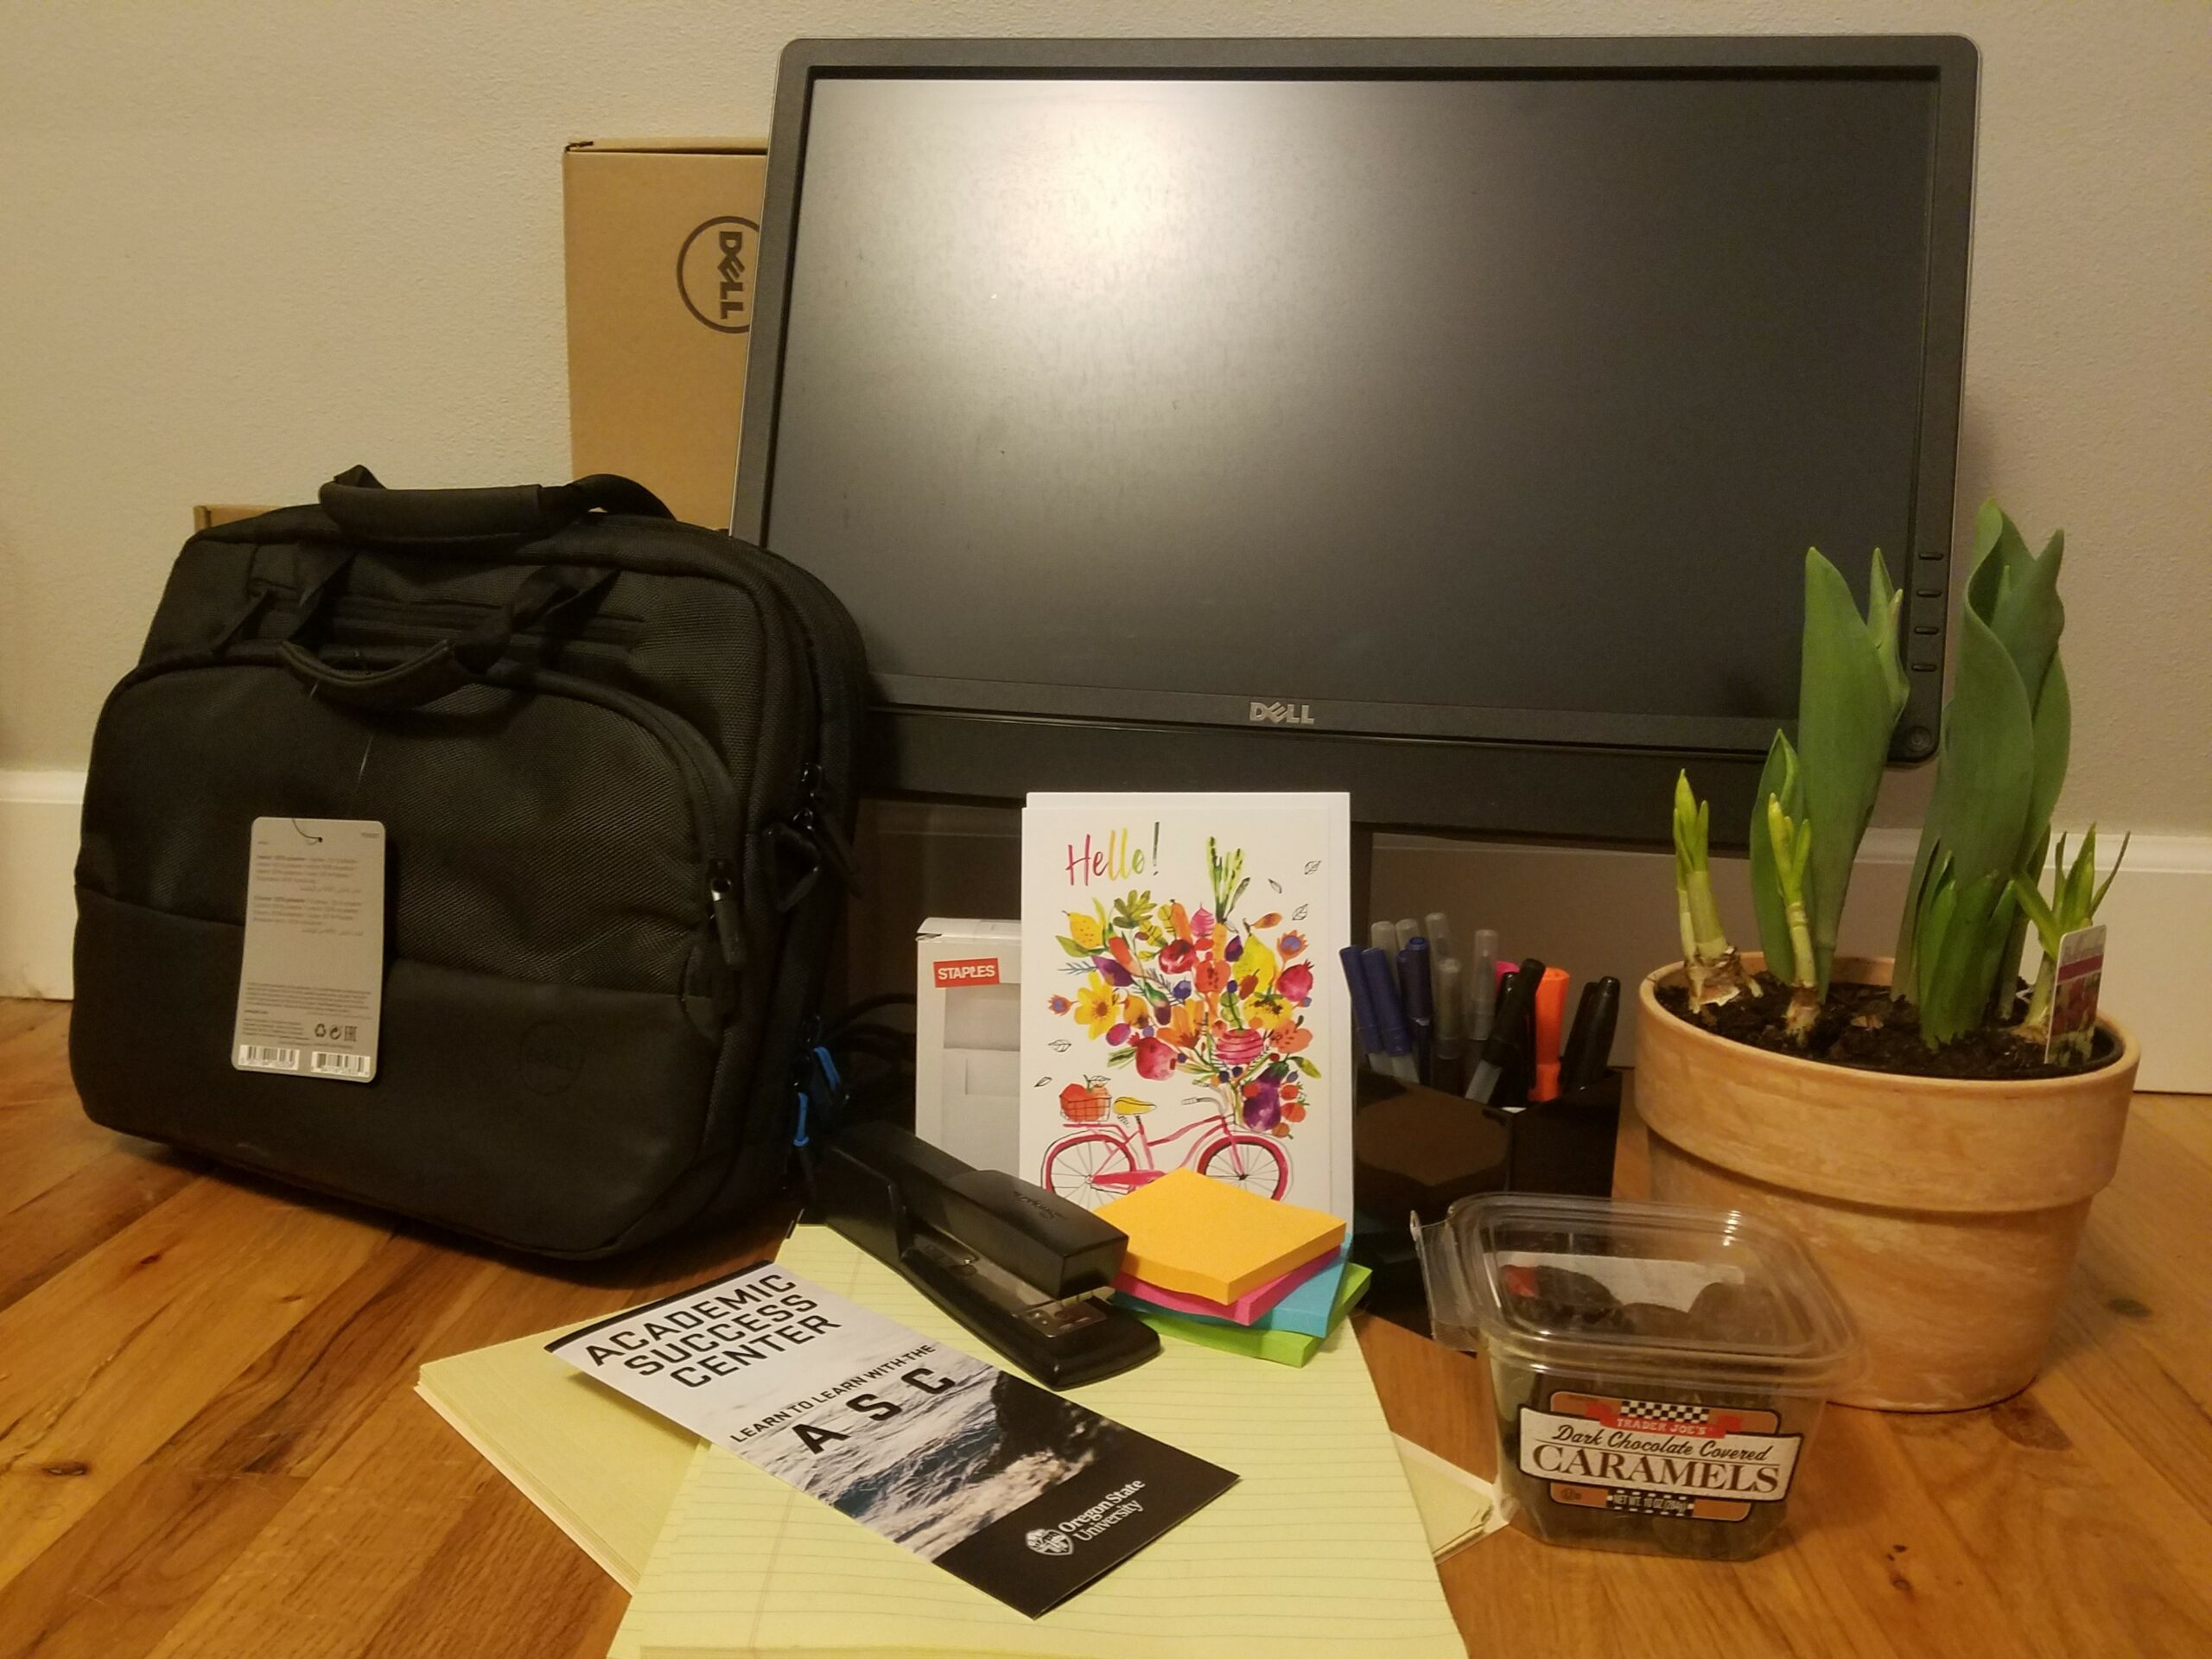 Photo of a welcome package including a laptop, pens, paper, chocolate, and a plant